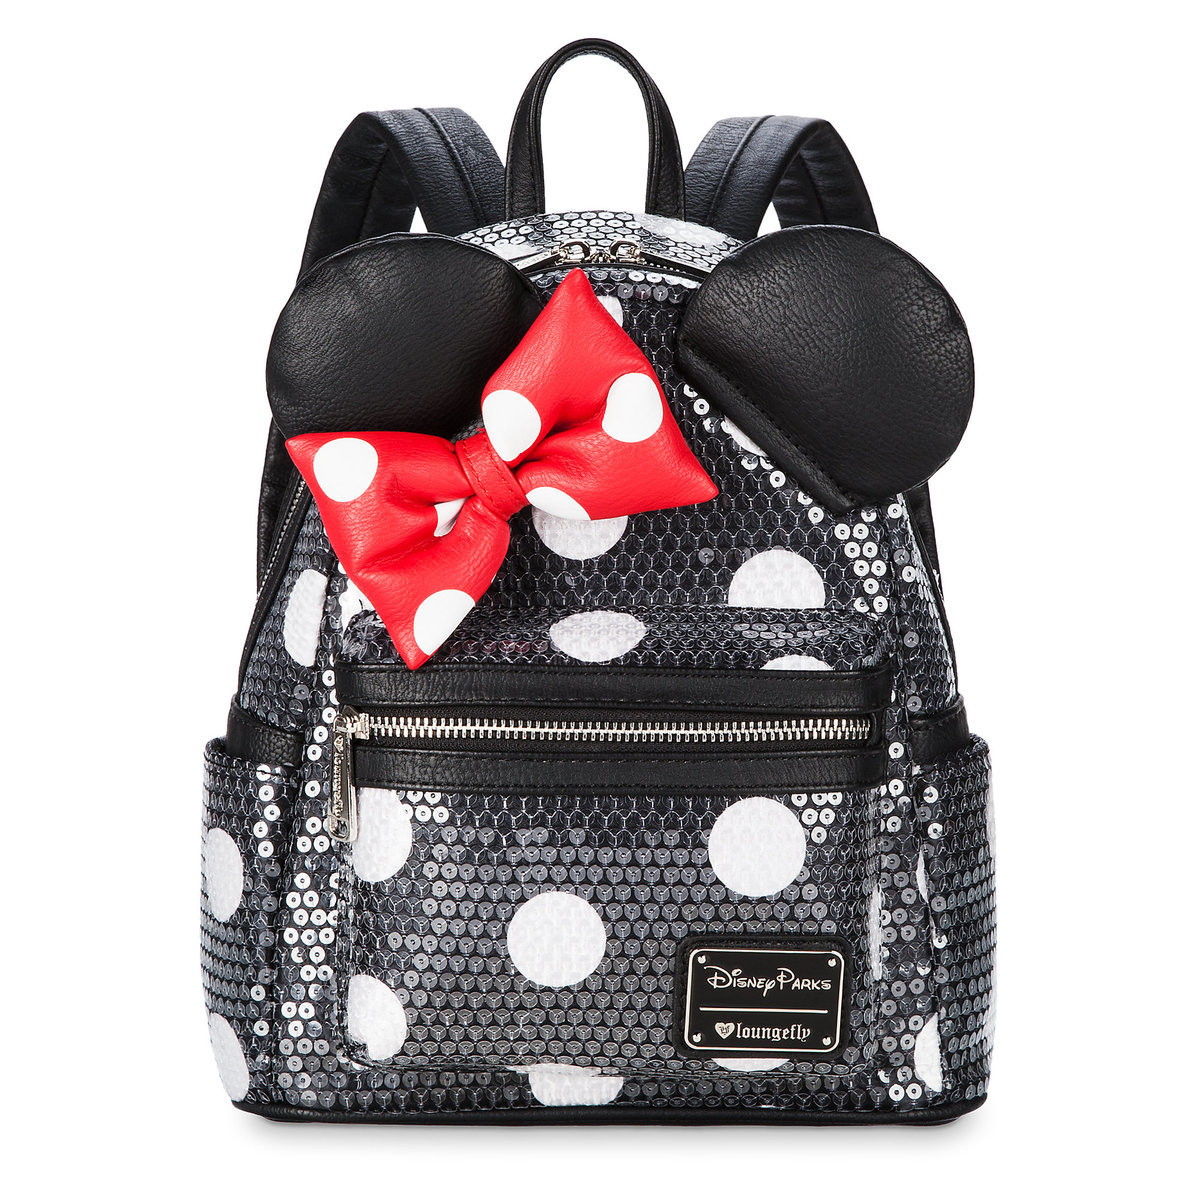 21df7d08199 Product Image of Minnie Mouse Sequined Mini Backpack by Loungefly   1